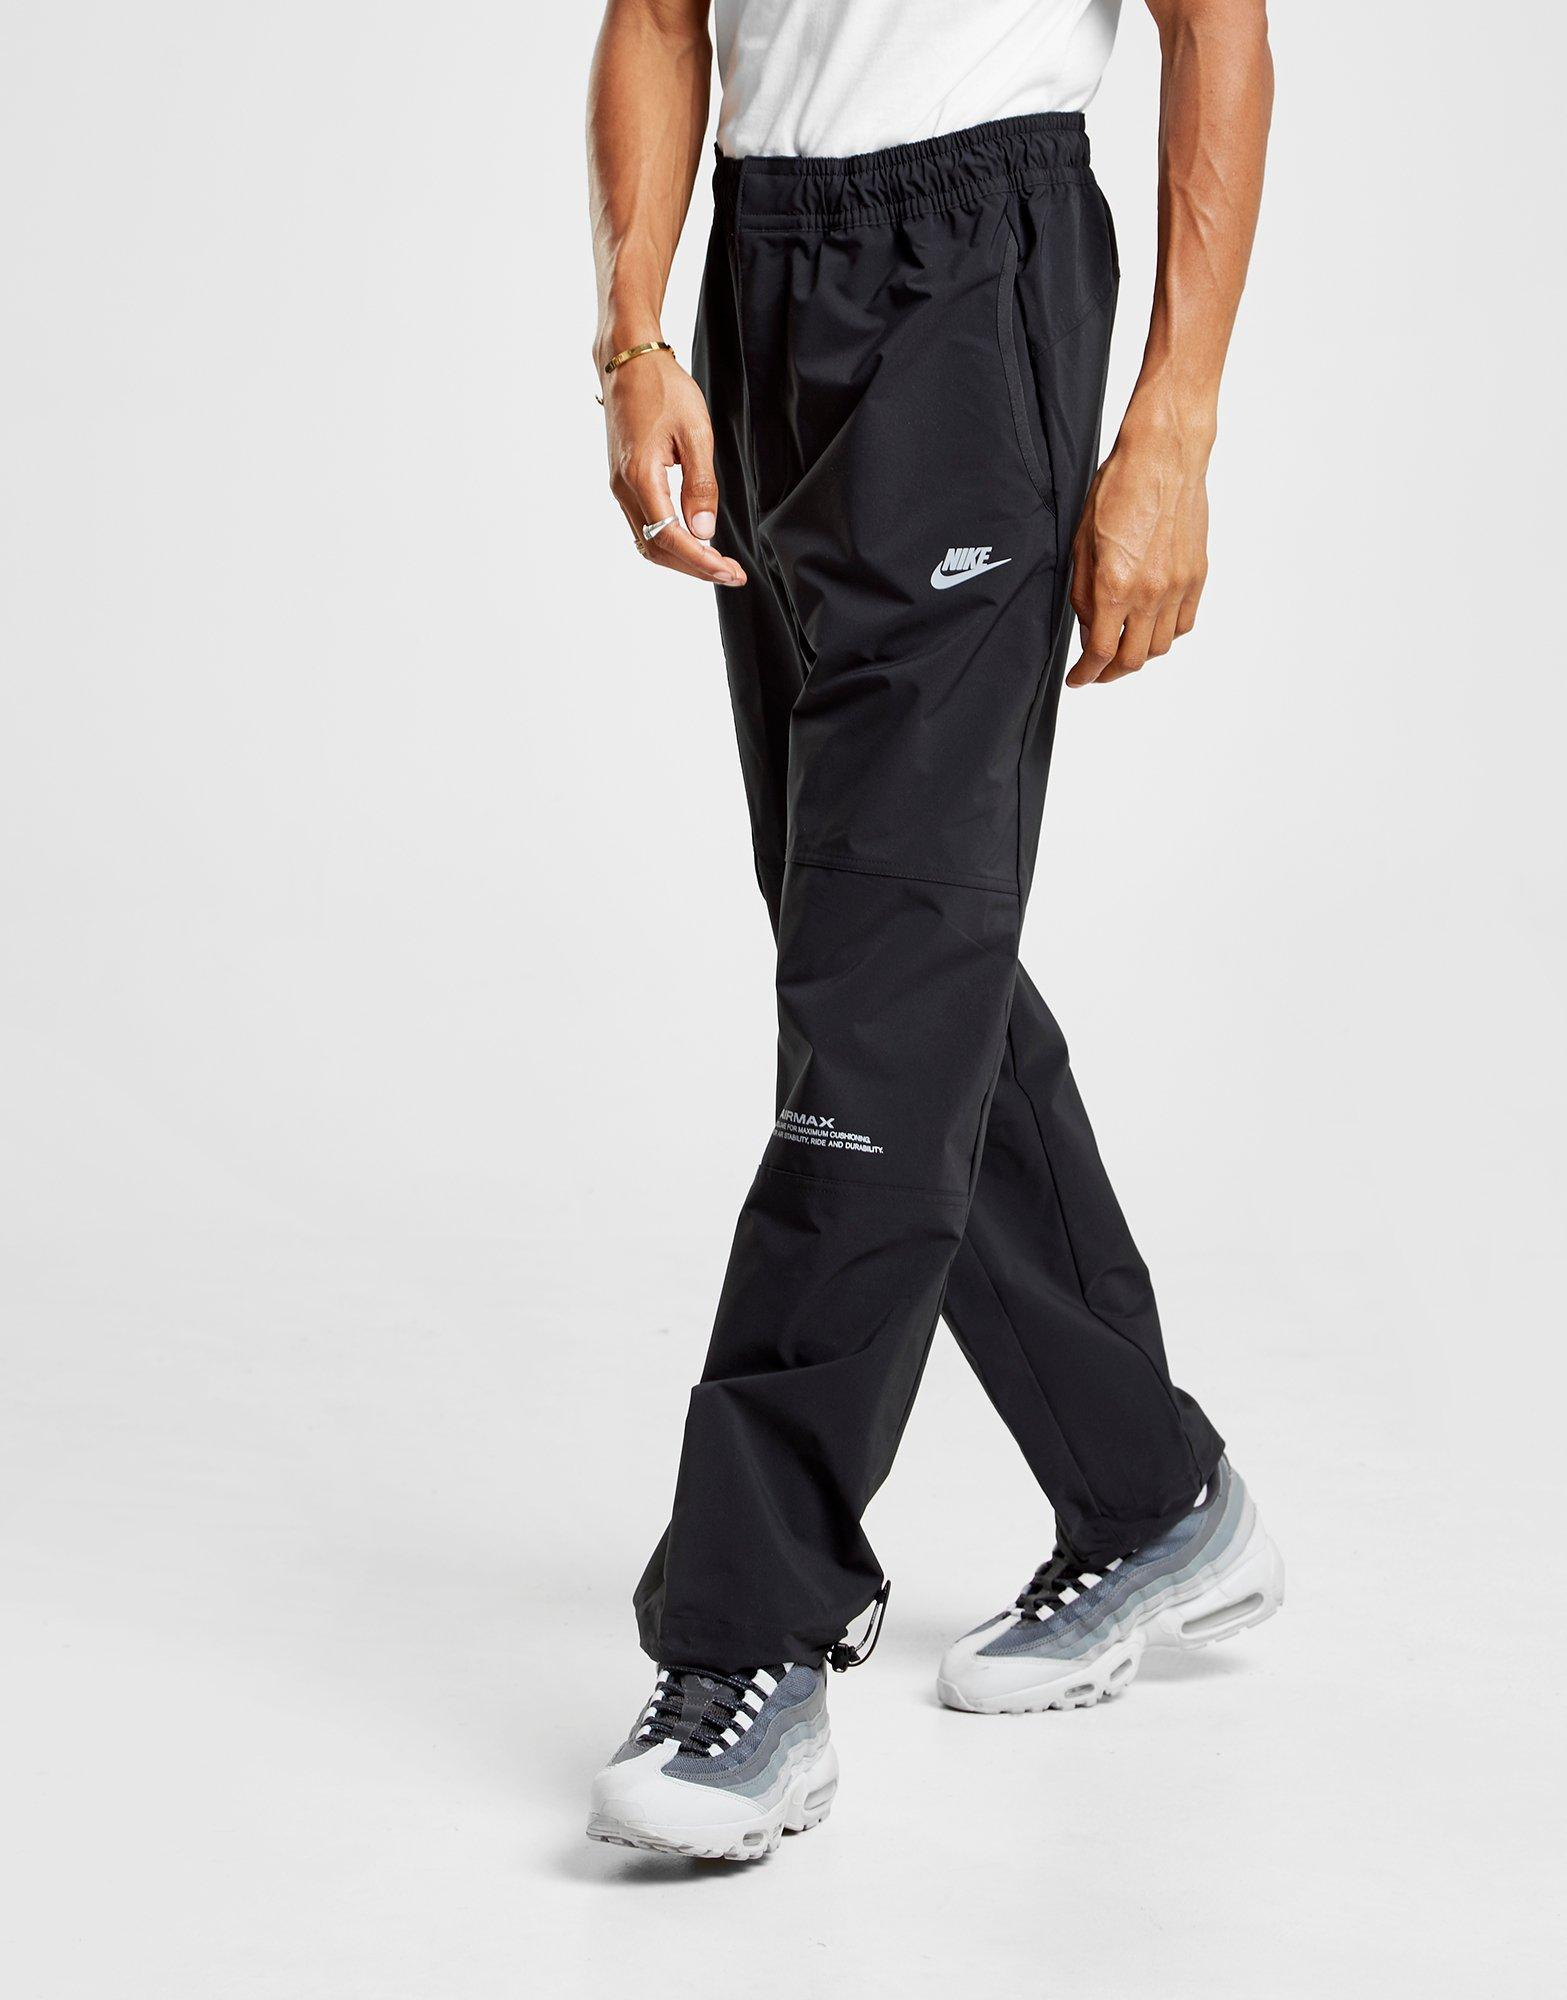 ea52c369f220 Nike Air Max Woven Track Pants in Black for Men - Lyst